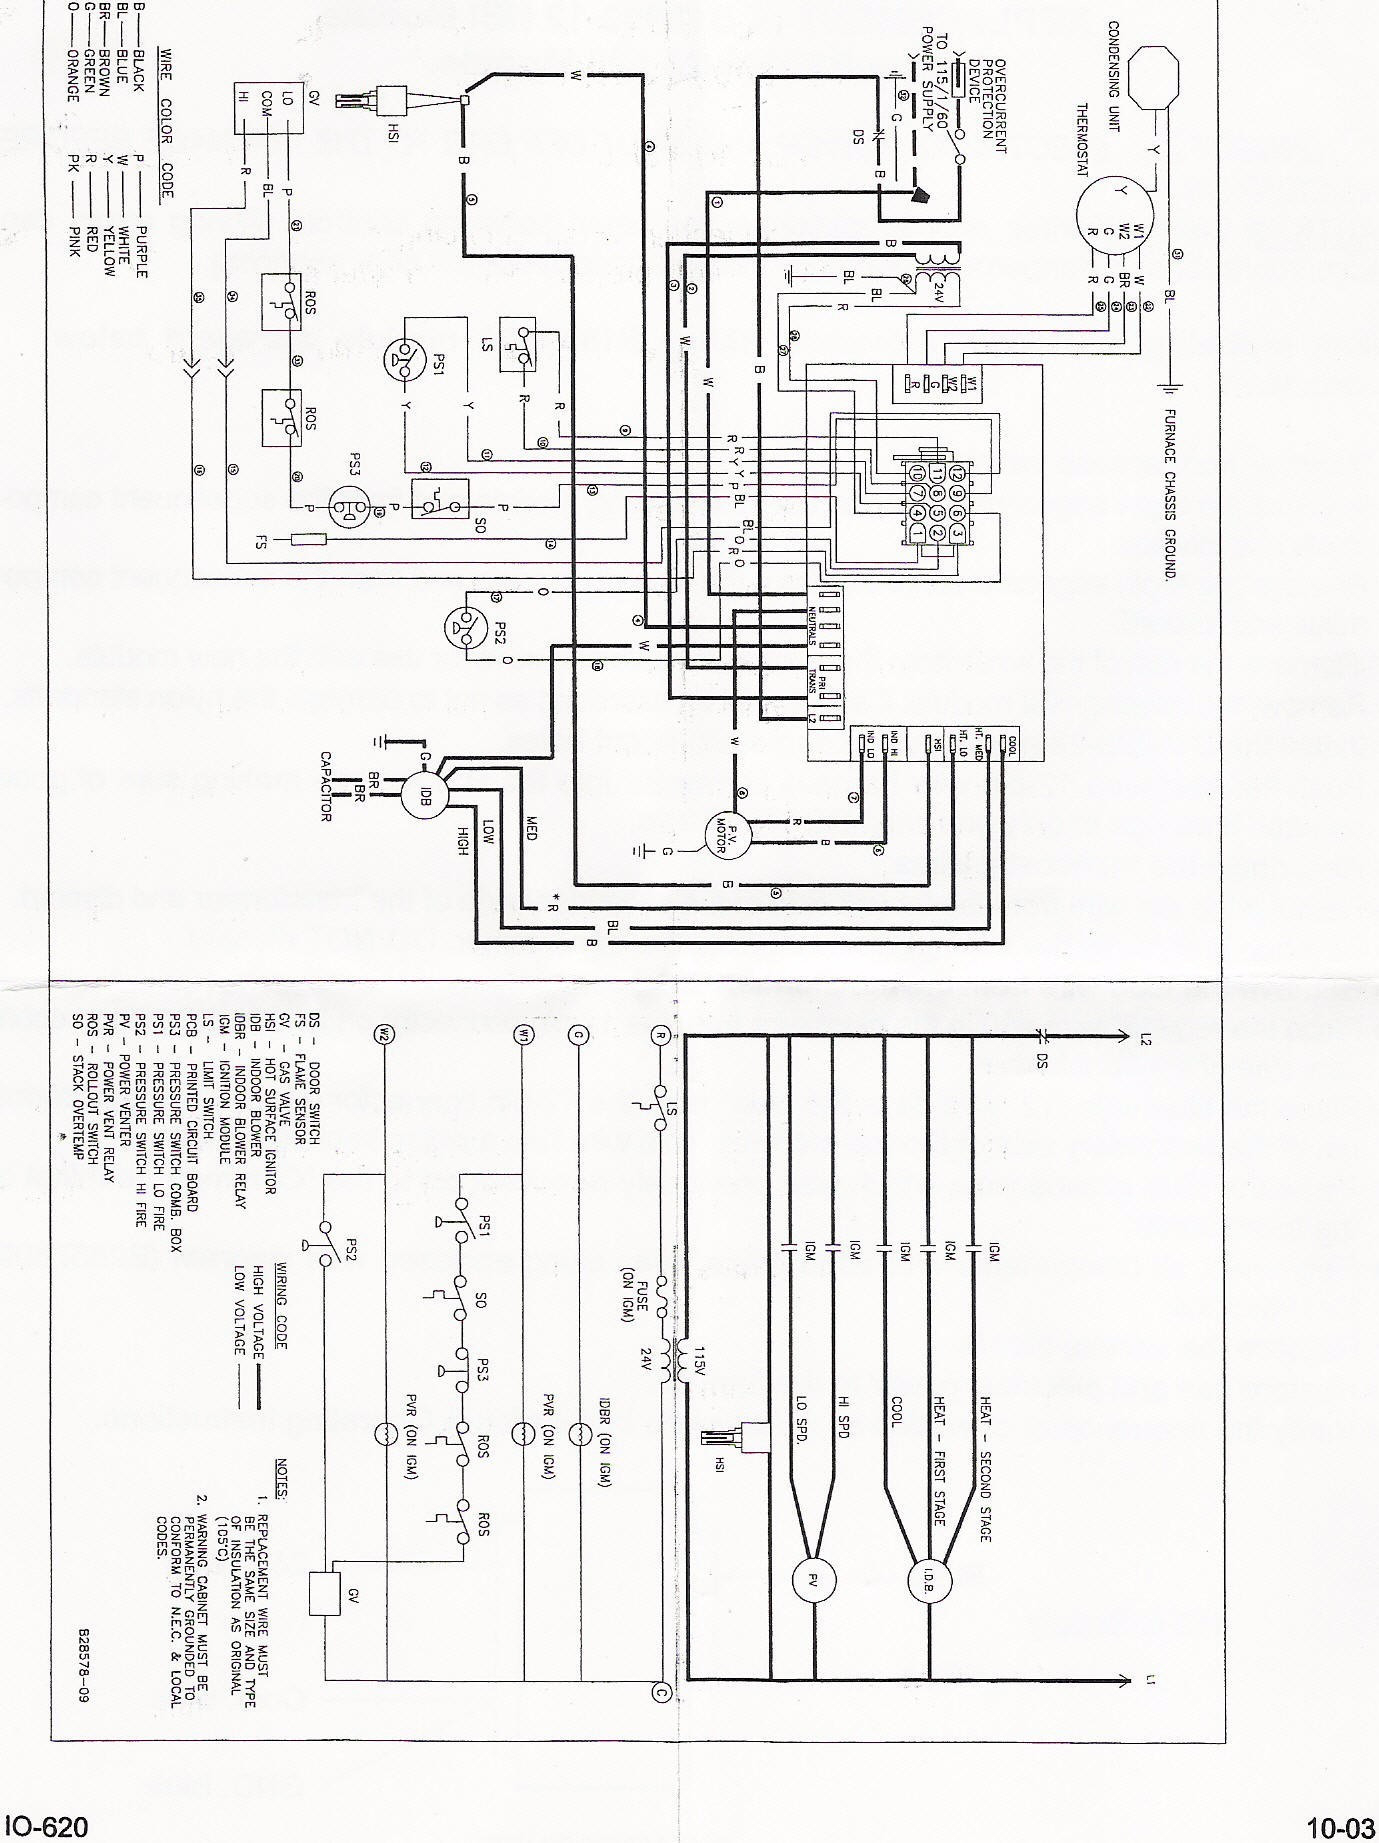 ruud wiring diagram Download-Goodman Condenser Wiring Diagram Data Unusual Ruud Heat Pump 19-j